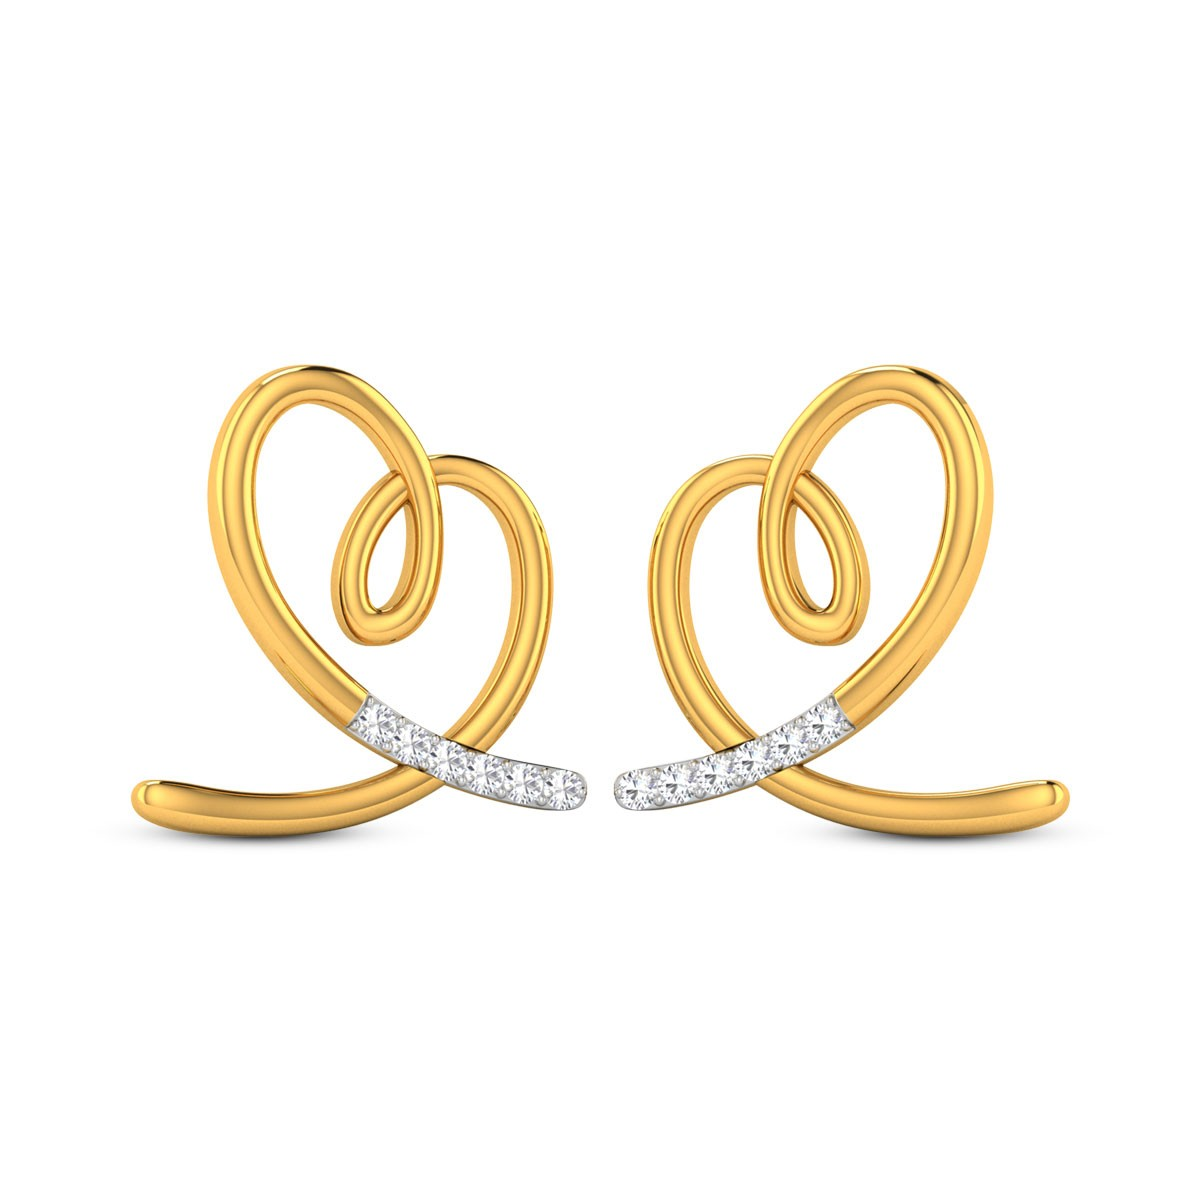 Hermoine Diamond Earrings